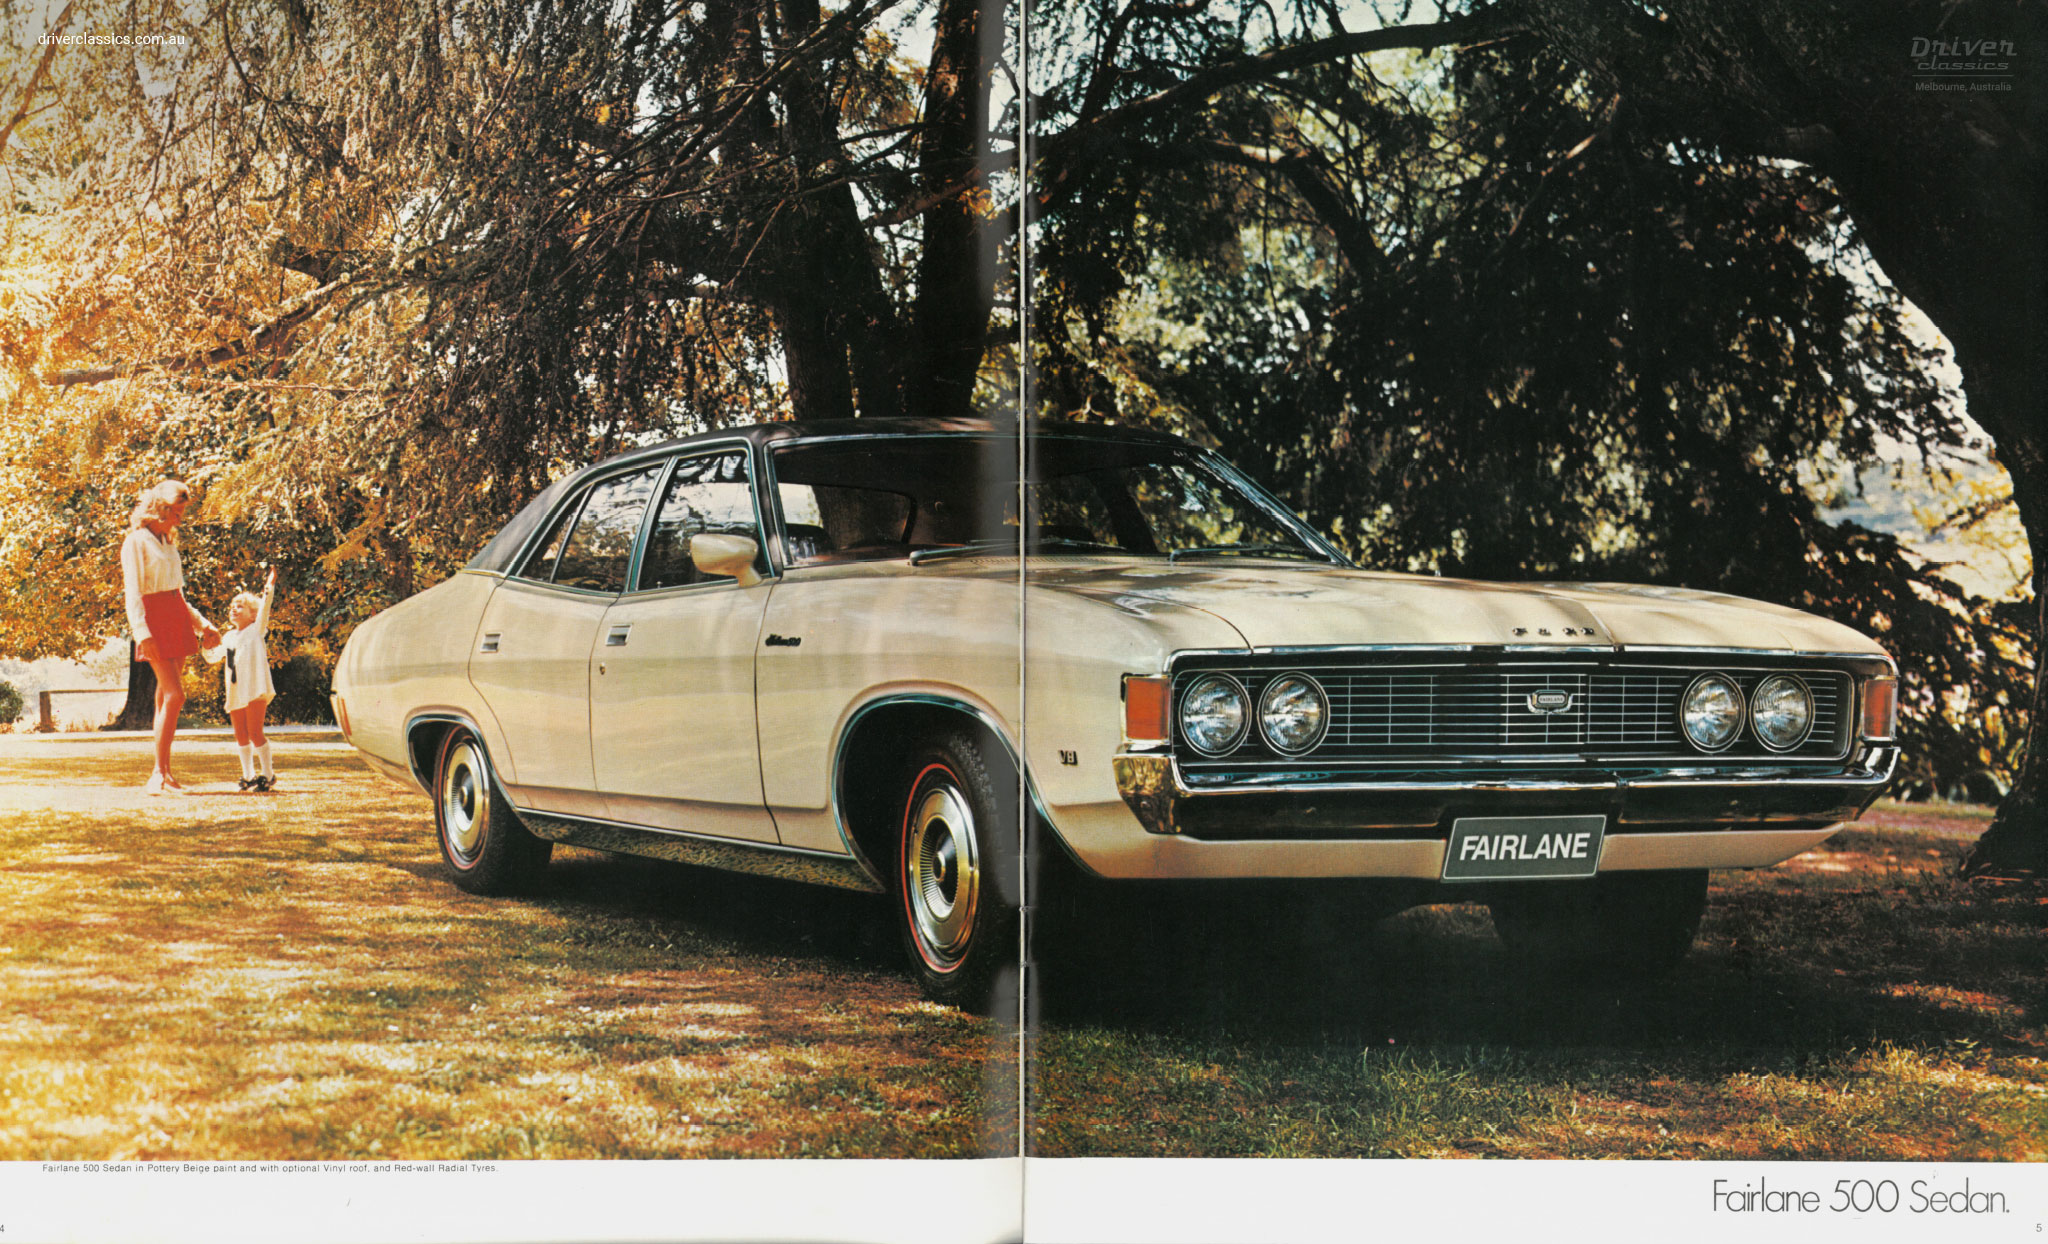 Page from 1972 Ford Fairlane 500 brochure